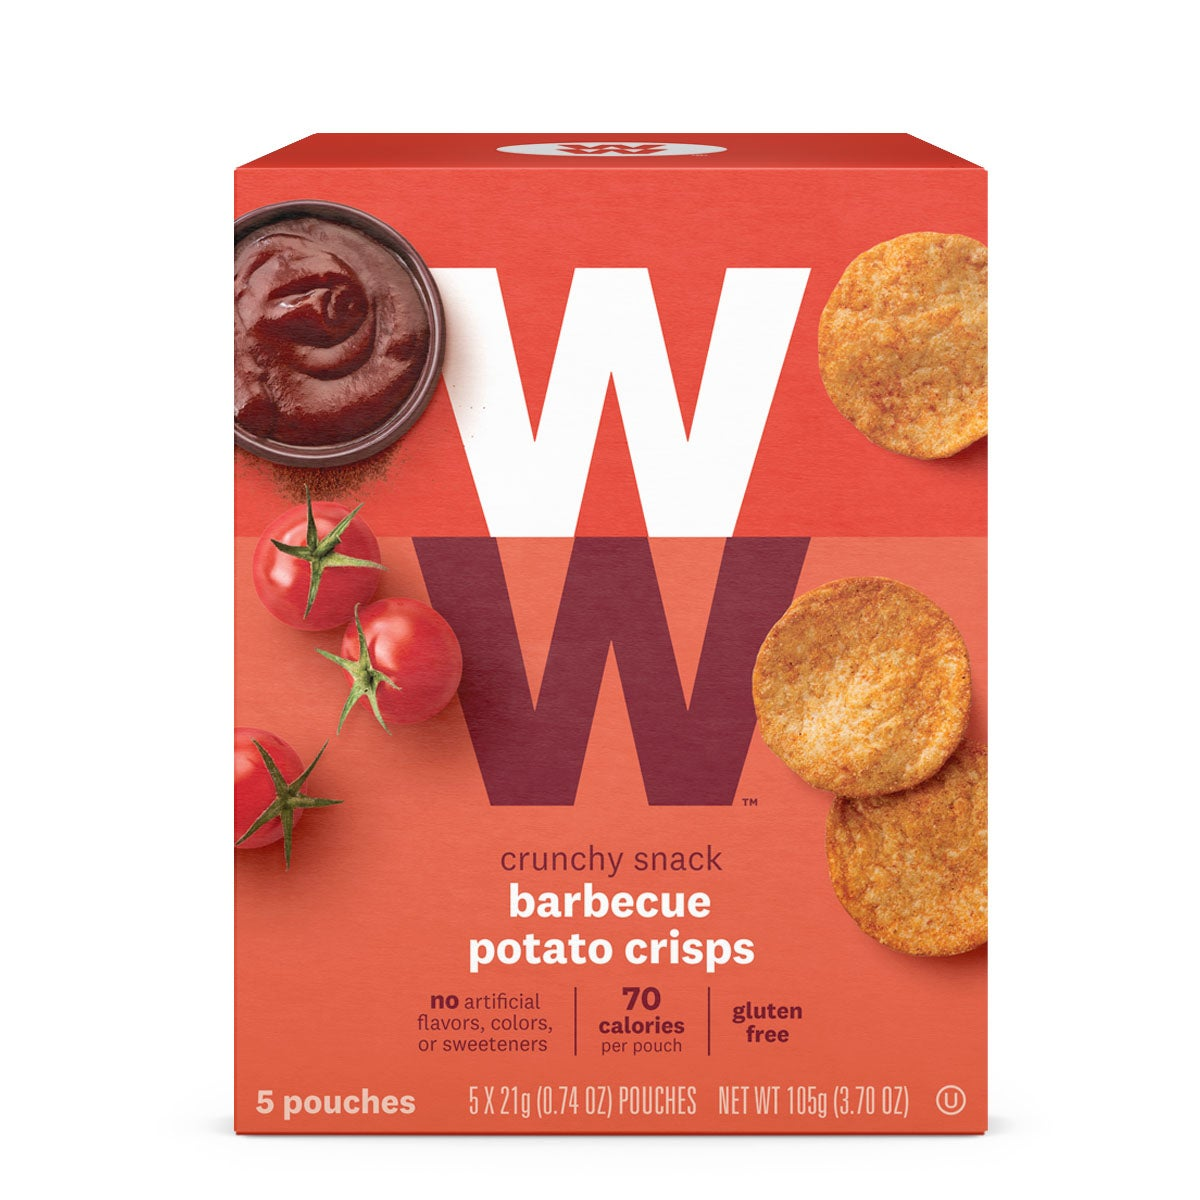 Barbecue Potato Crisps